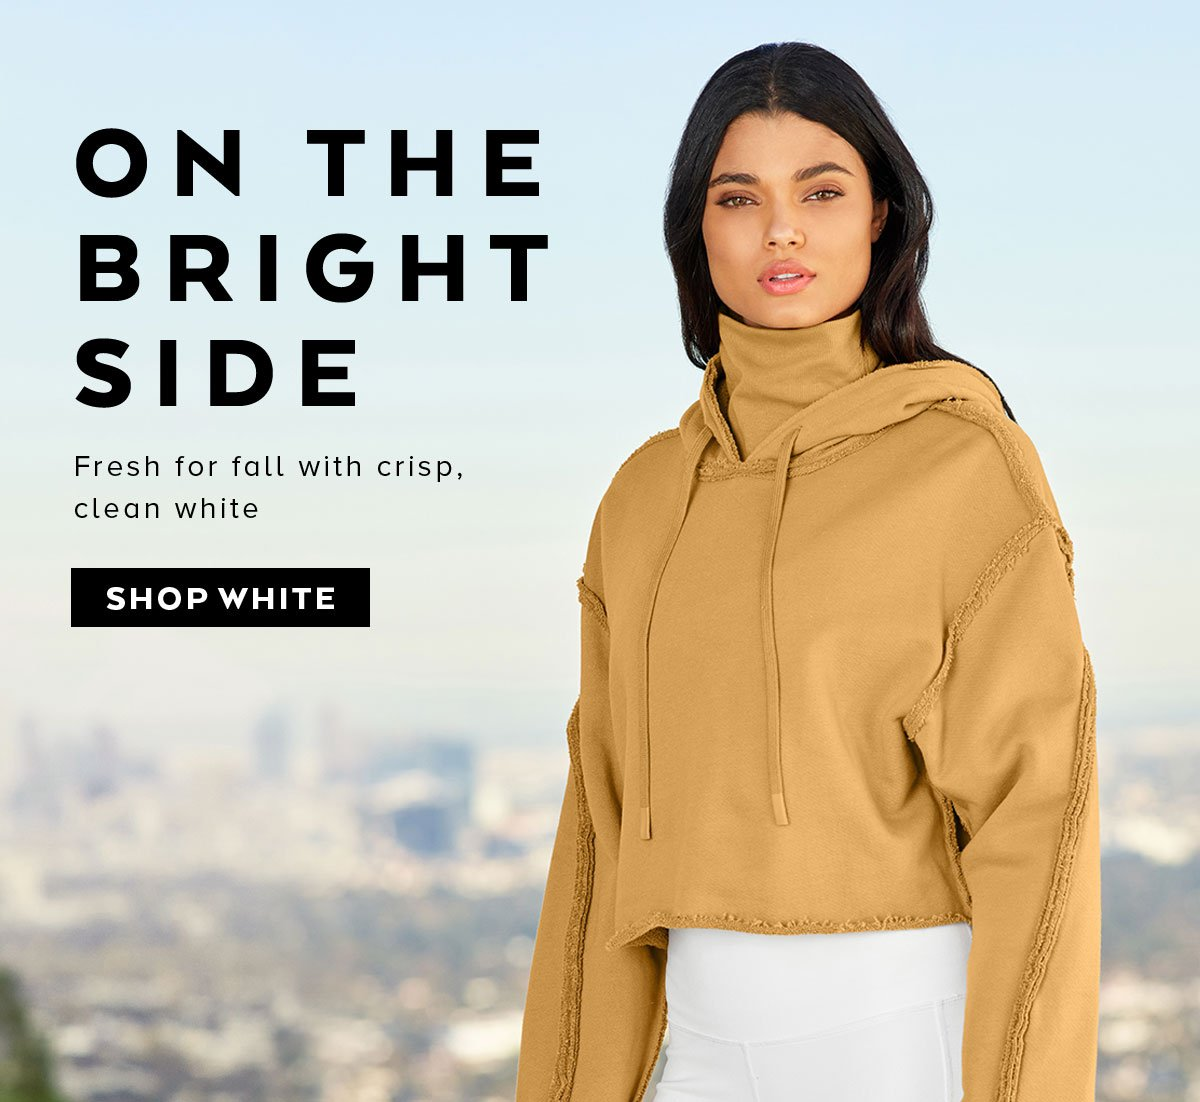 ON THE BRIGHT SIDE - SHOP WHITE